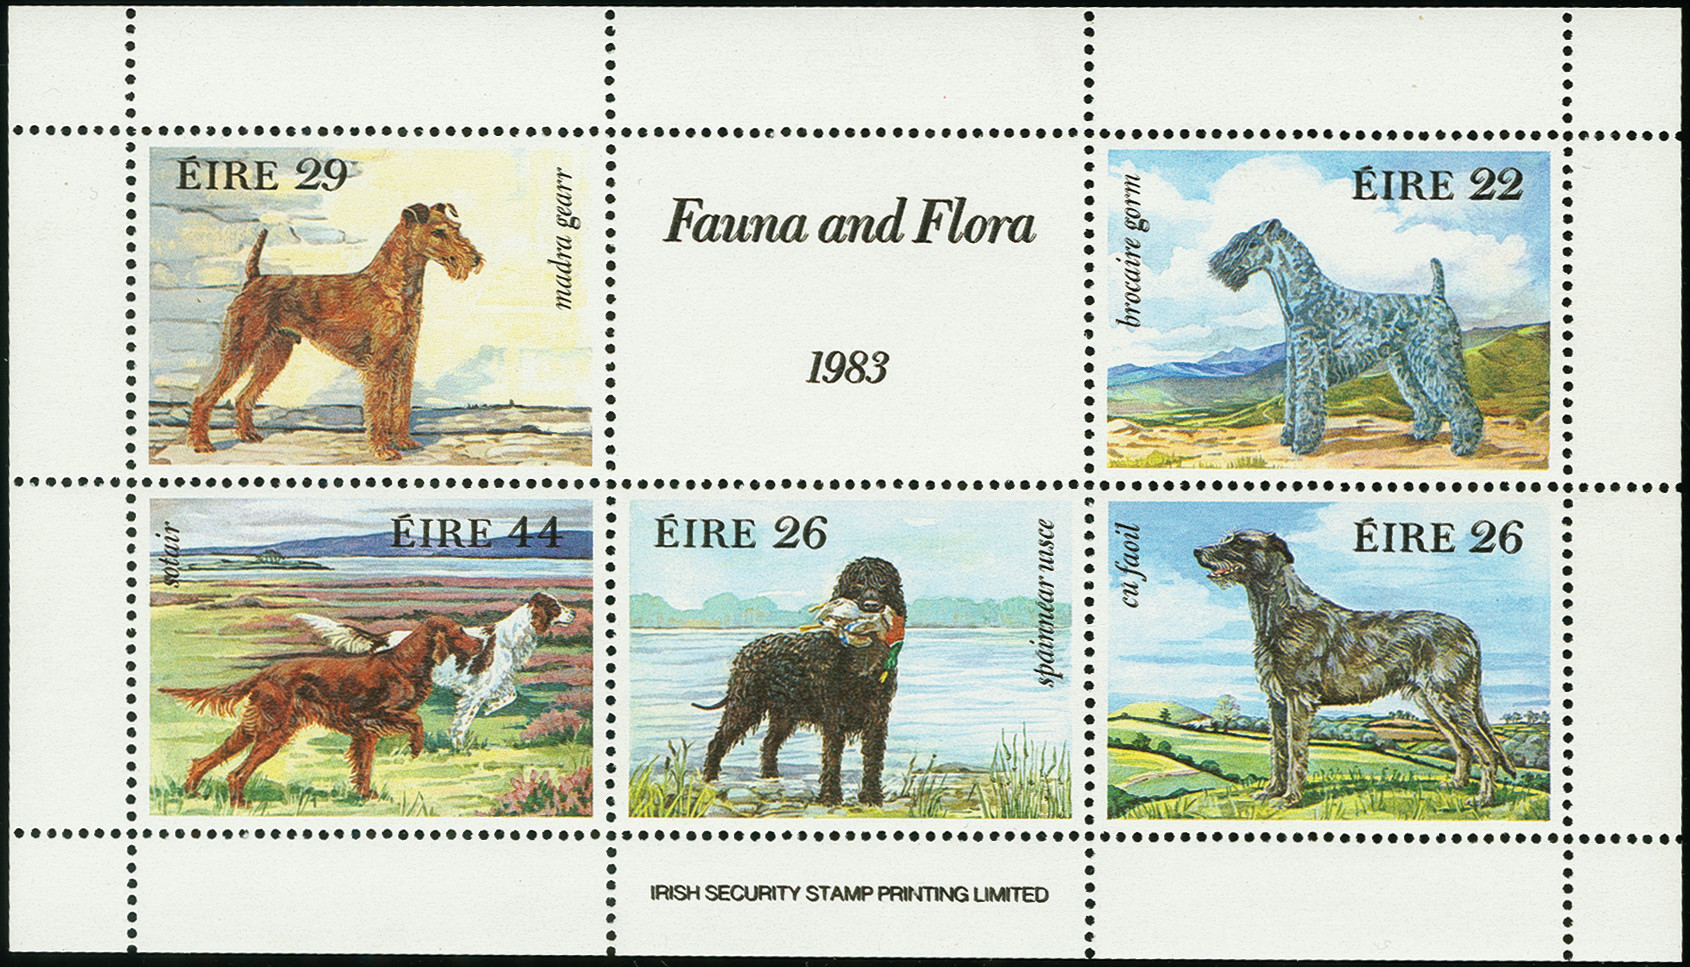 Stamp Auction - europe ireland - Auction #368- Day 2, lot 7172